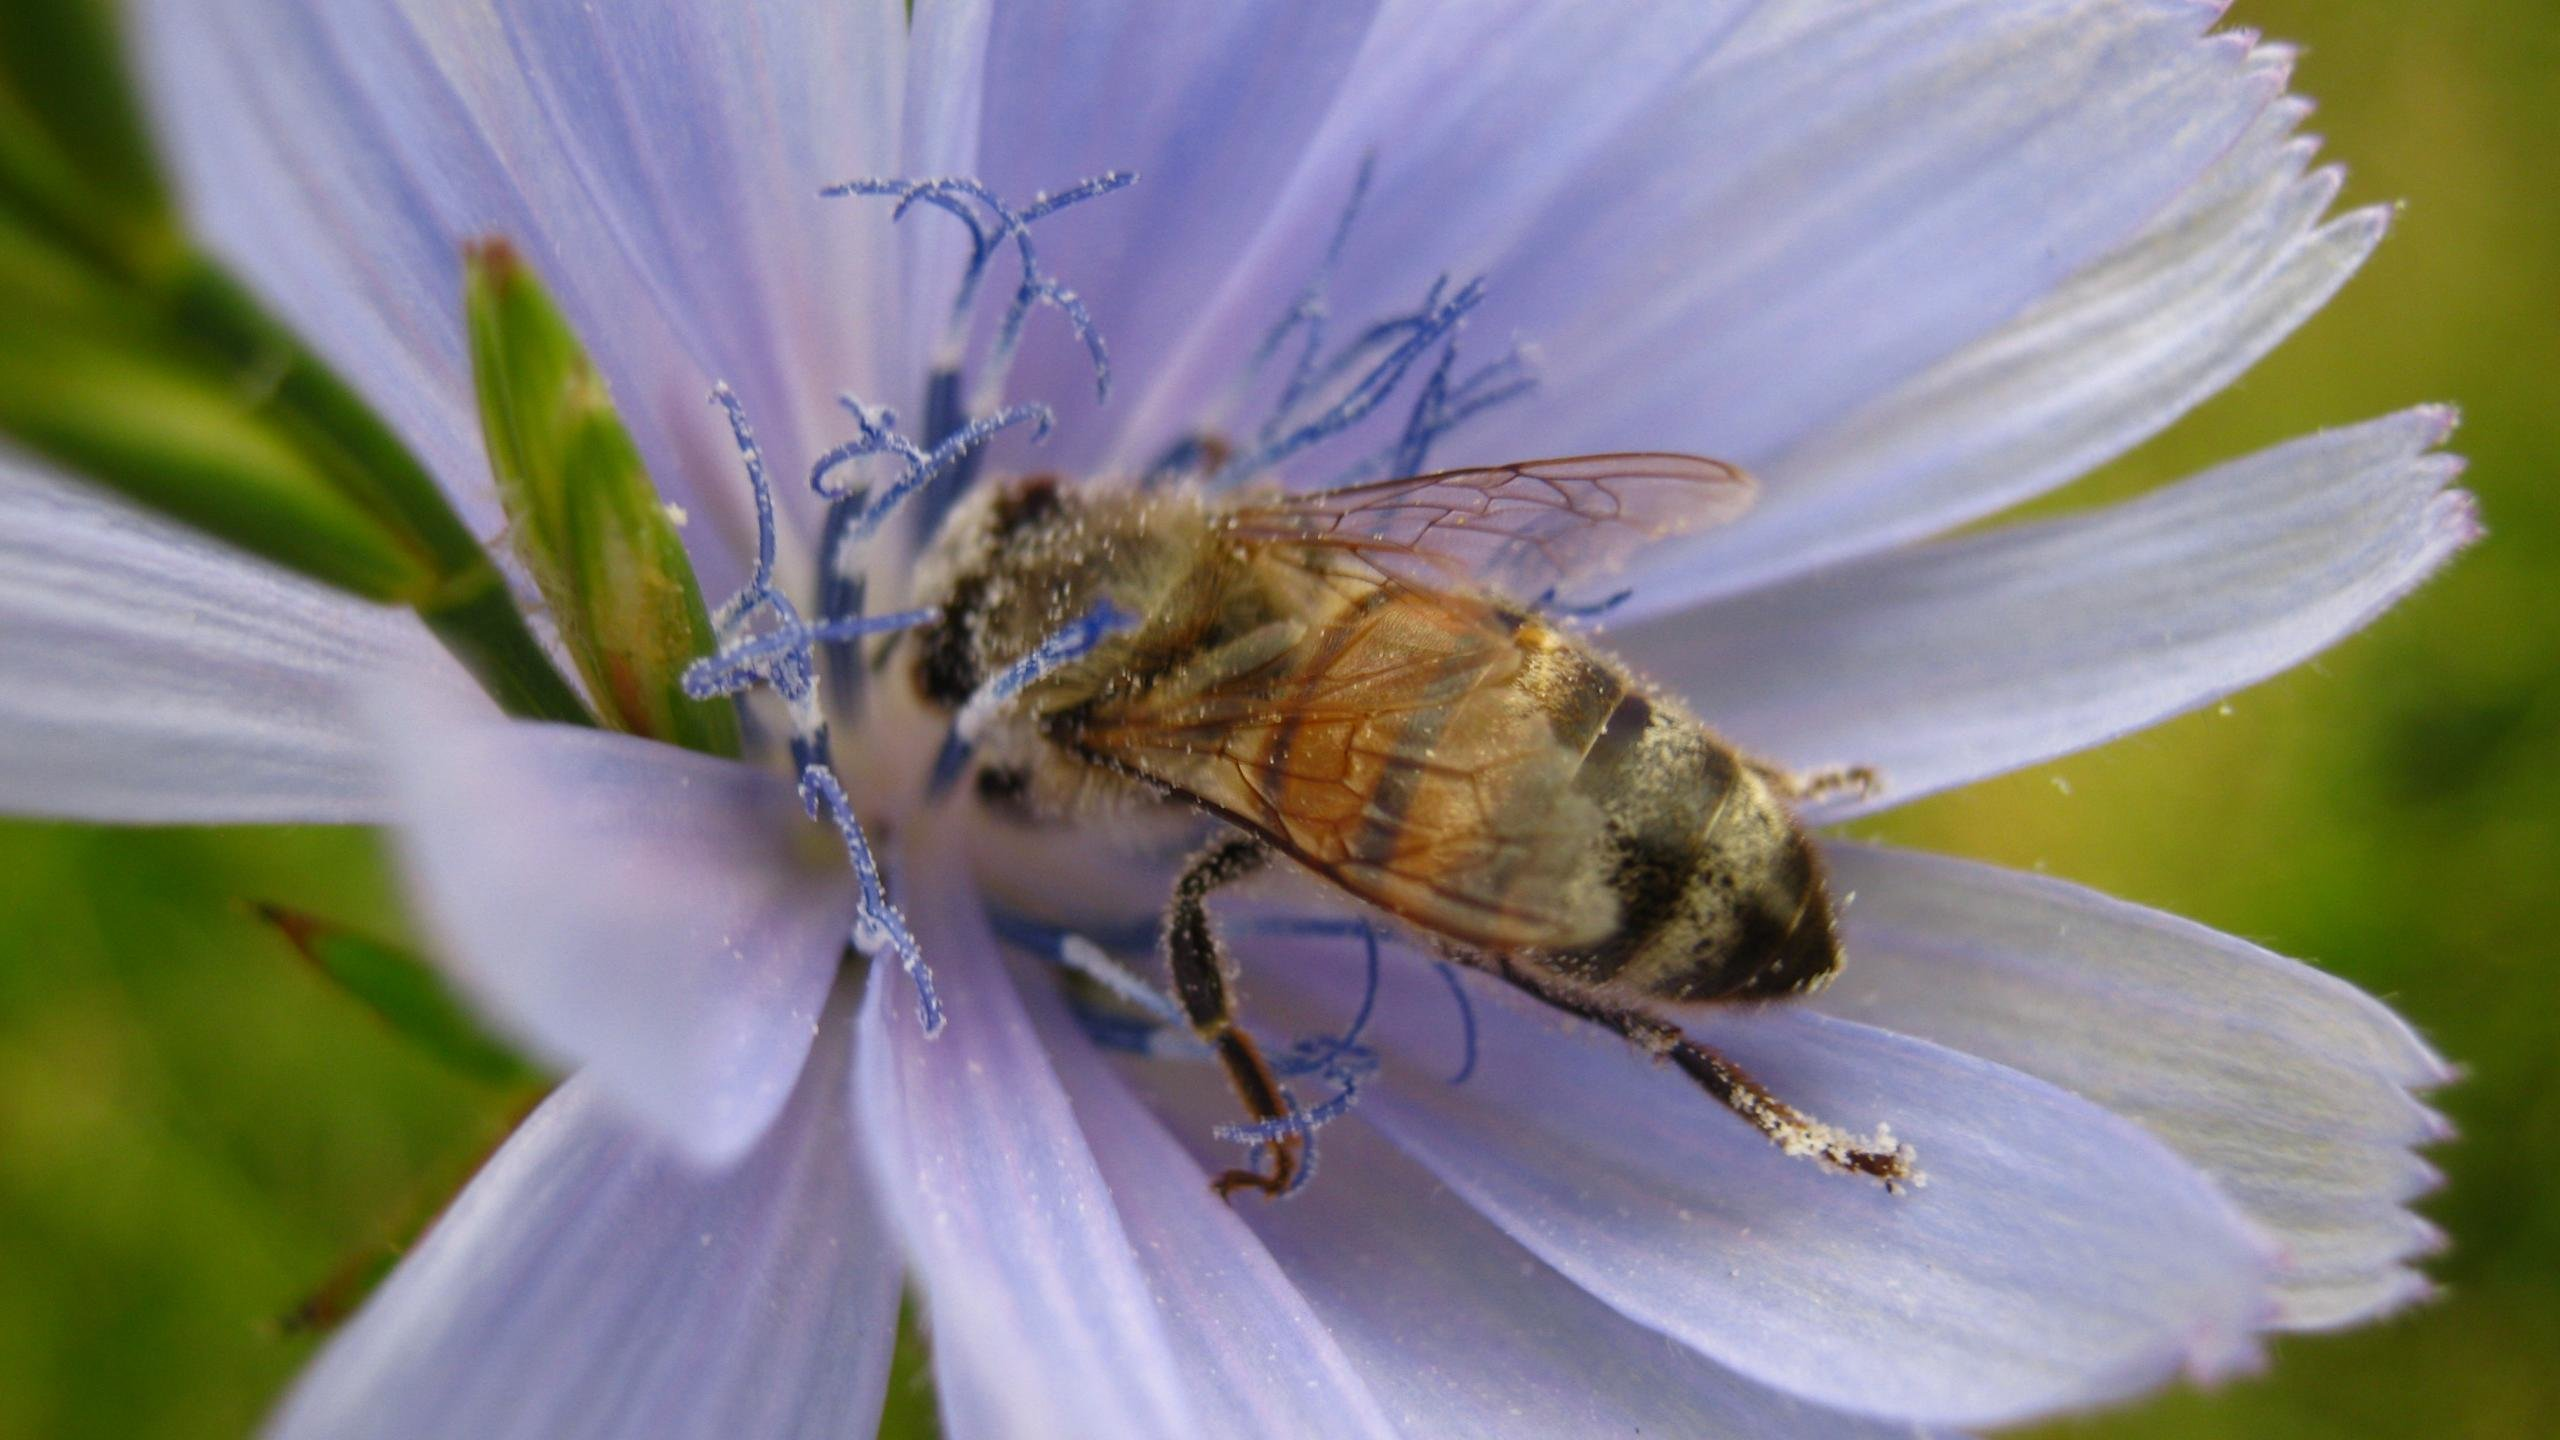 Free Bee high quality wallpaper ID:460890 for hd 2560x1440 PC